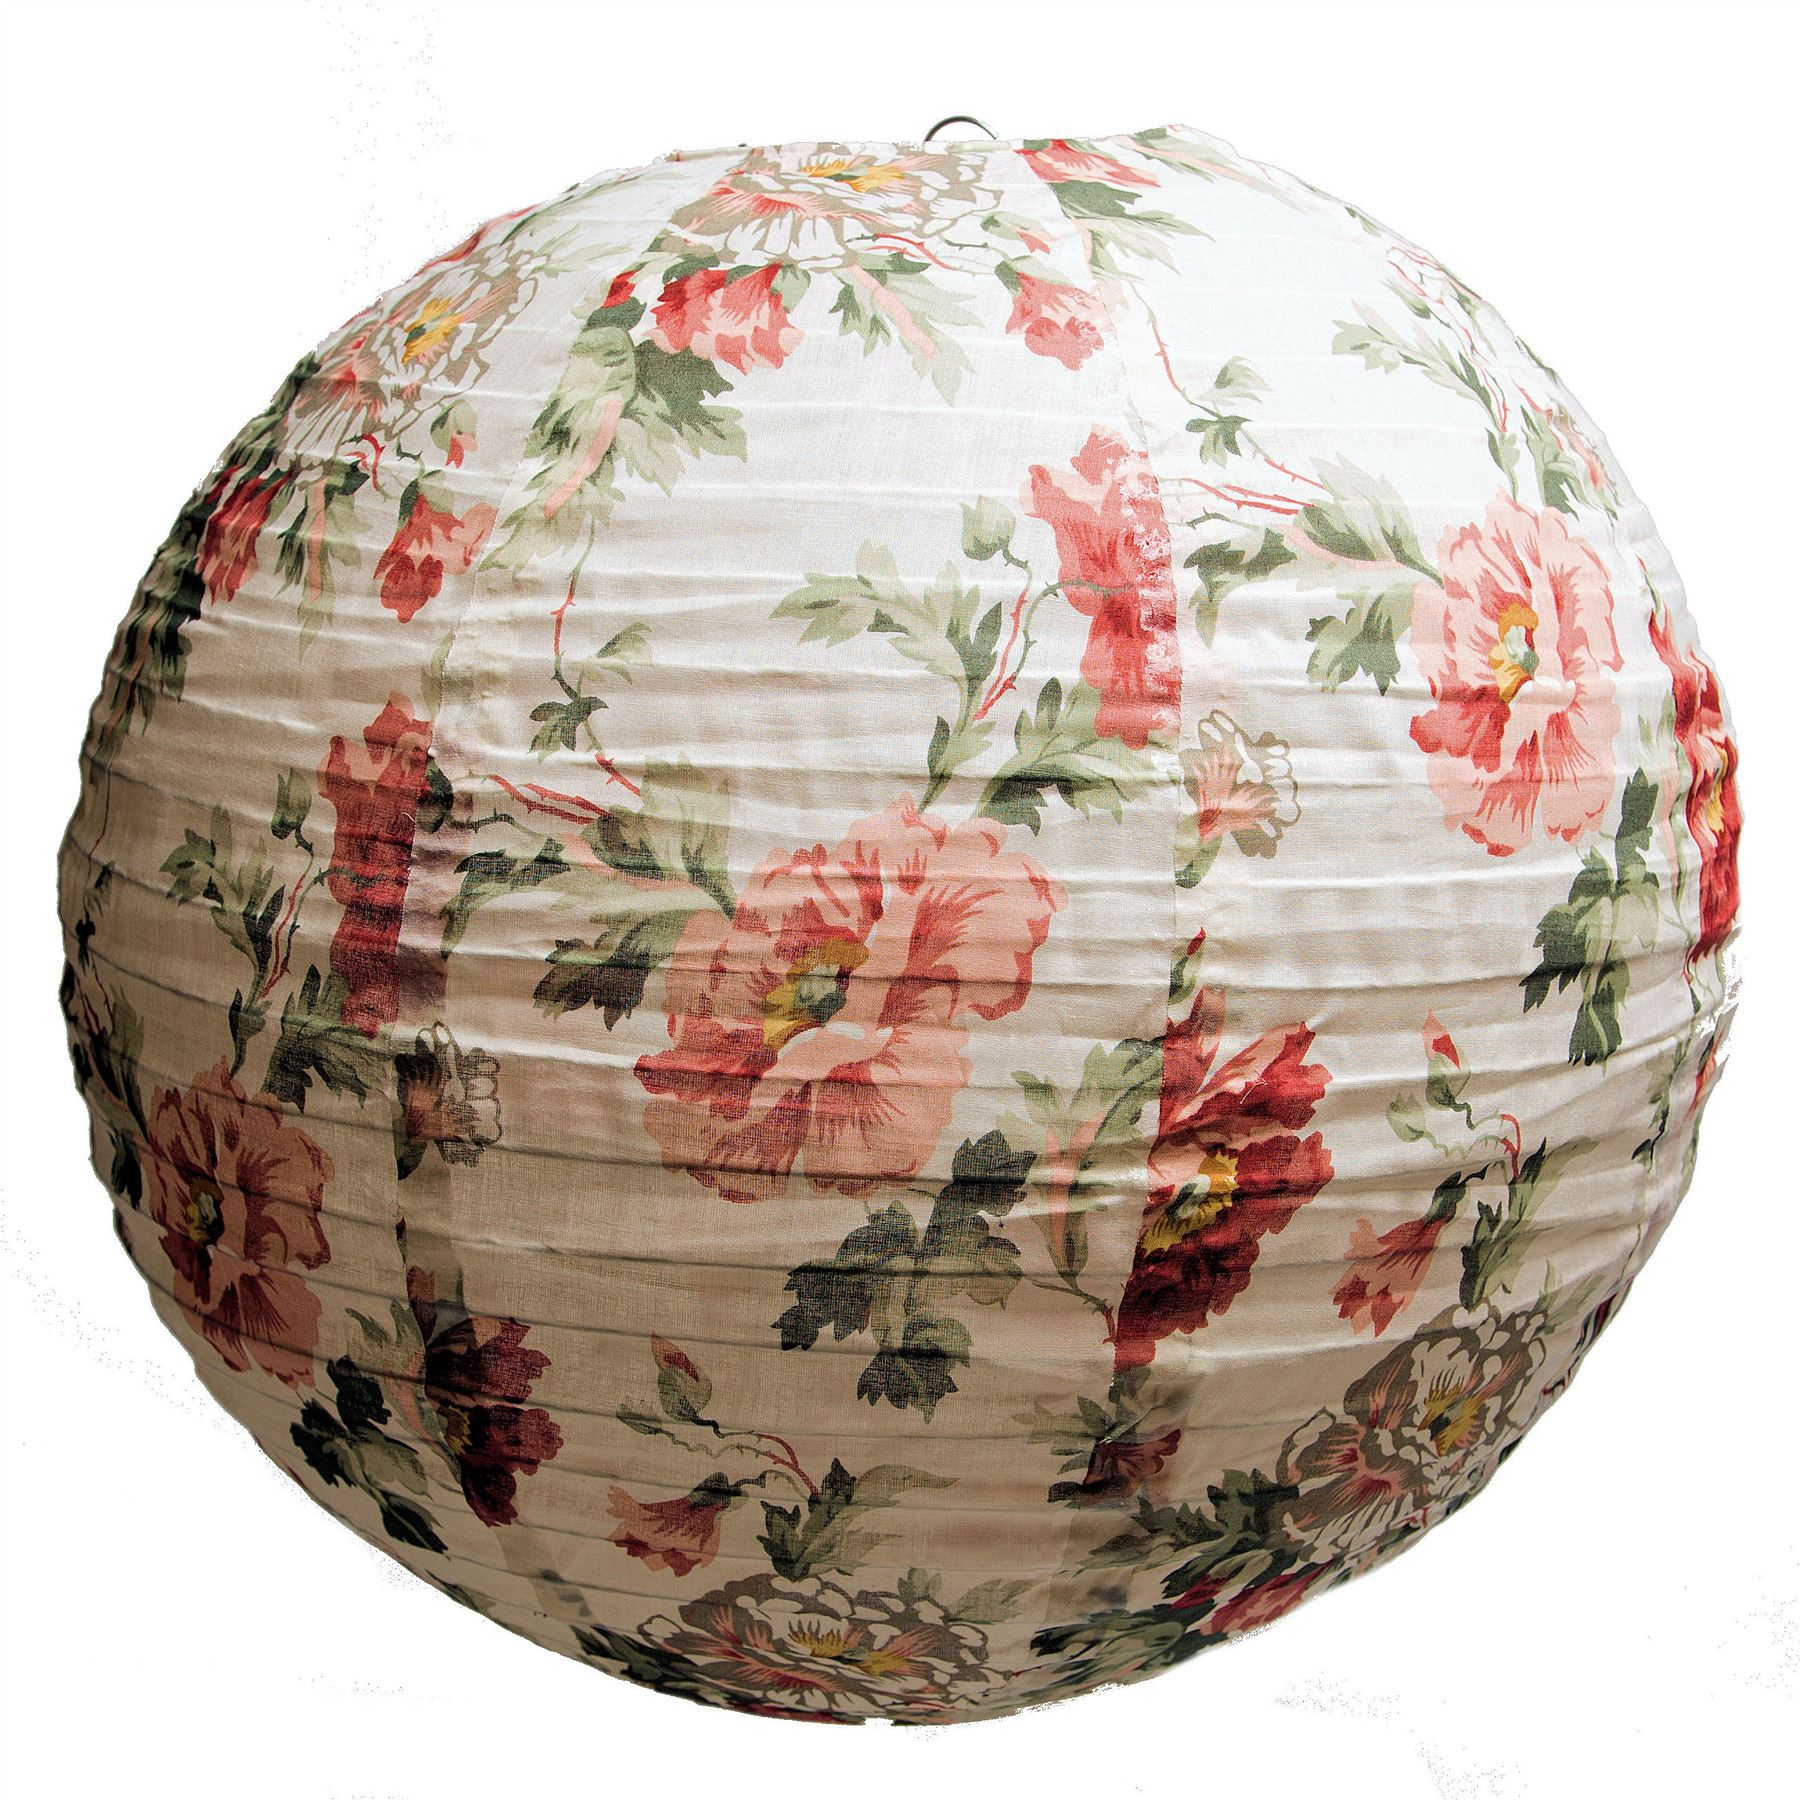 Ceiling Lamp Shade Materials: LARGE FABRIC LIGHT/LAMP SHADE FLORAL ROUND CEILING GLOBE